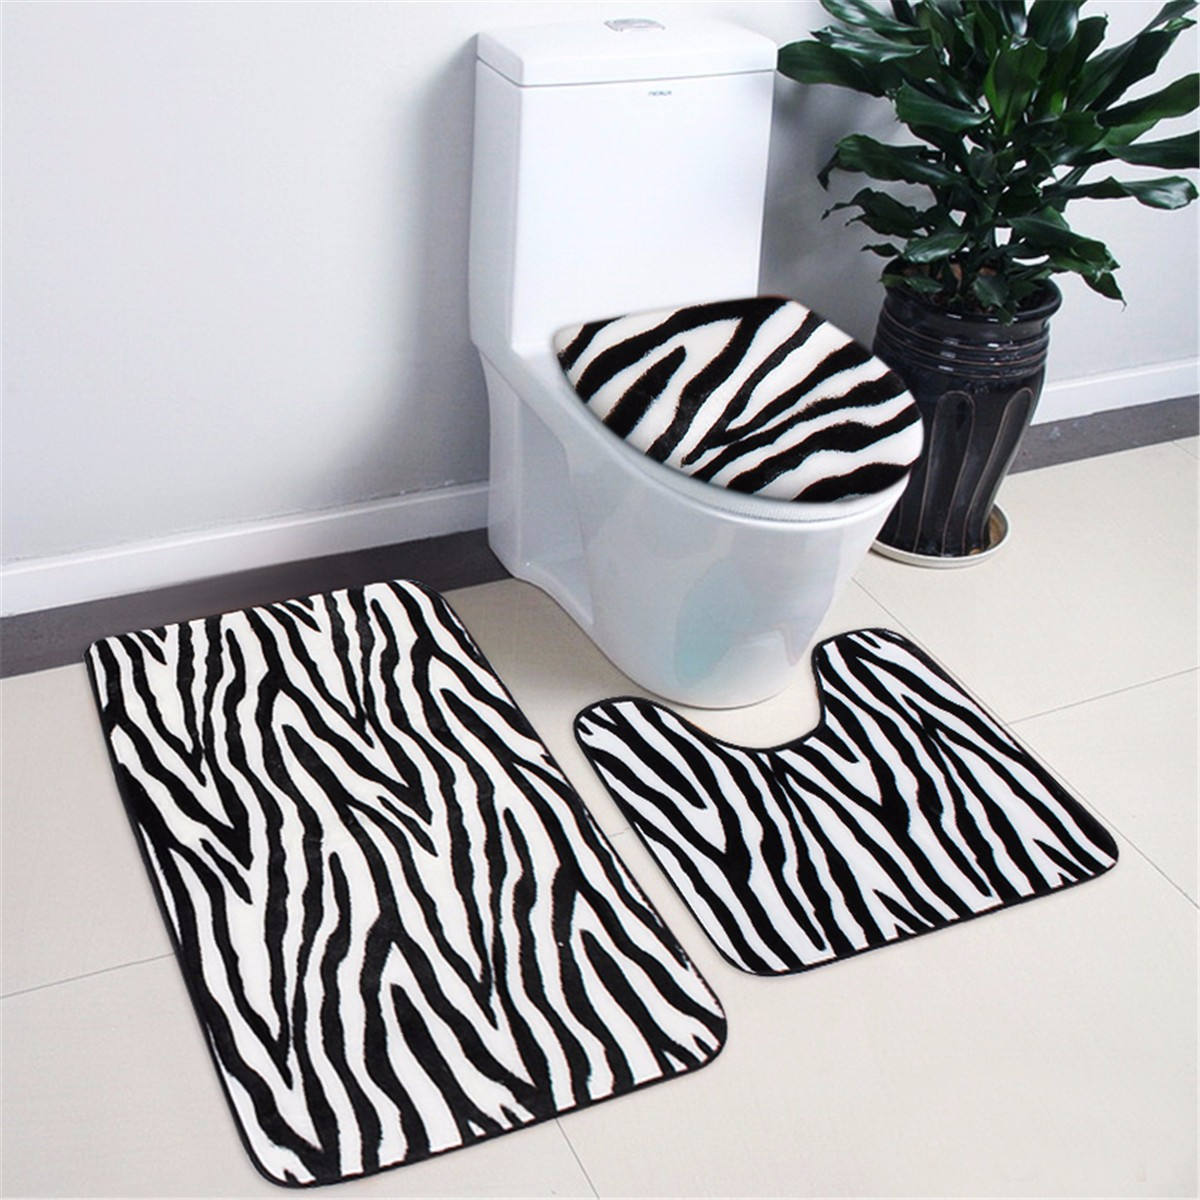 Zebra Leopard Print Toilet Cover Set Bath Bathroom Mat Rug